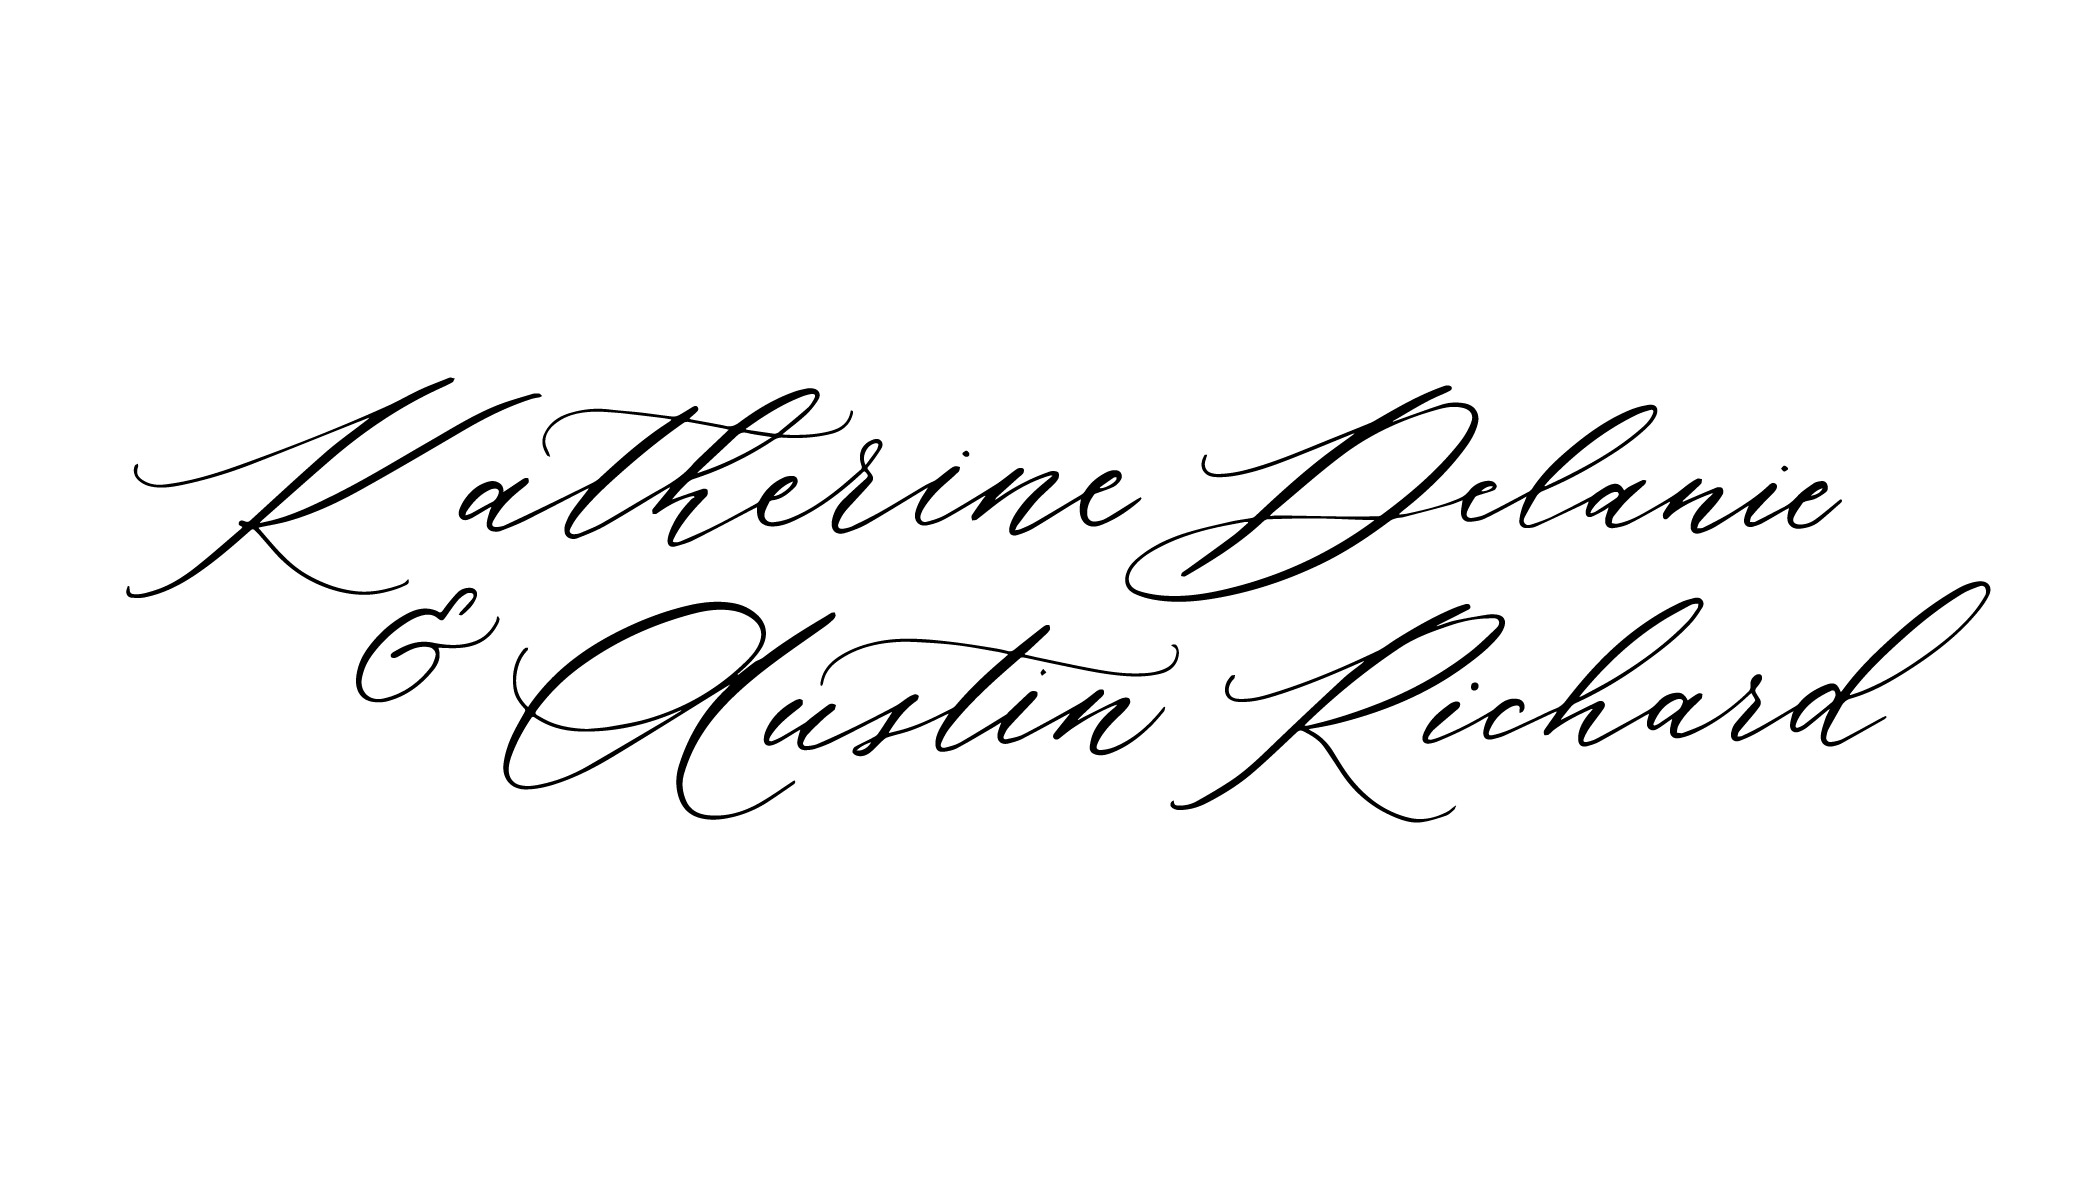 Caroline Calligraphy Style by Caitlin O'Bryant Design